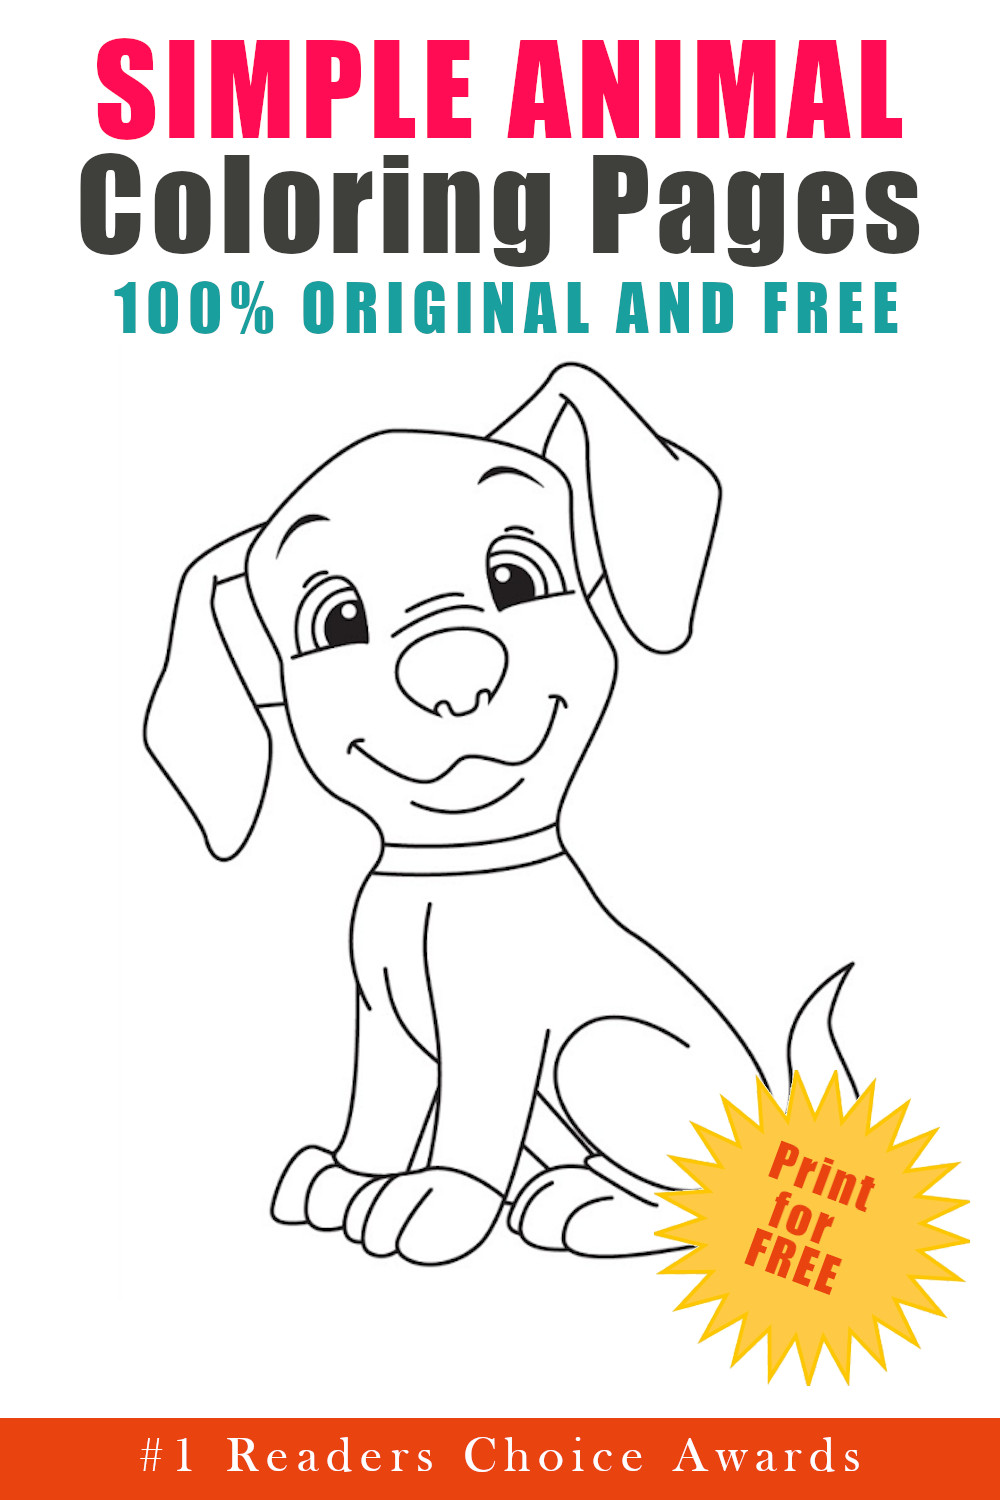 original and free simple animal coloring pages